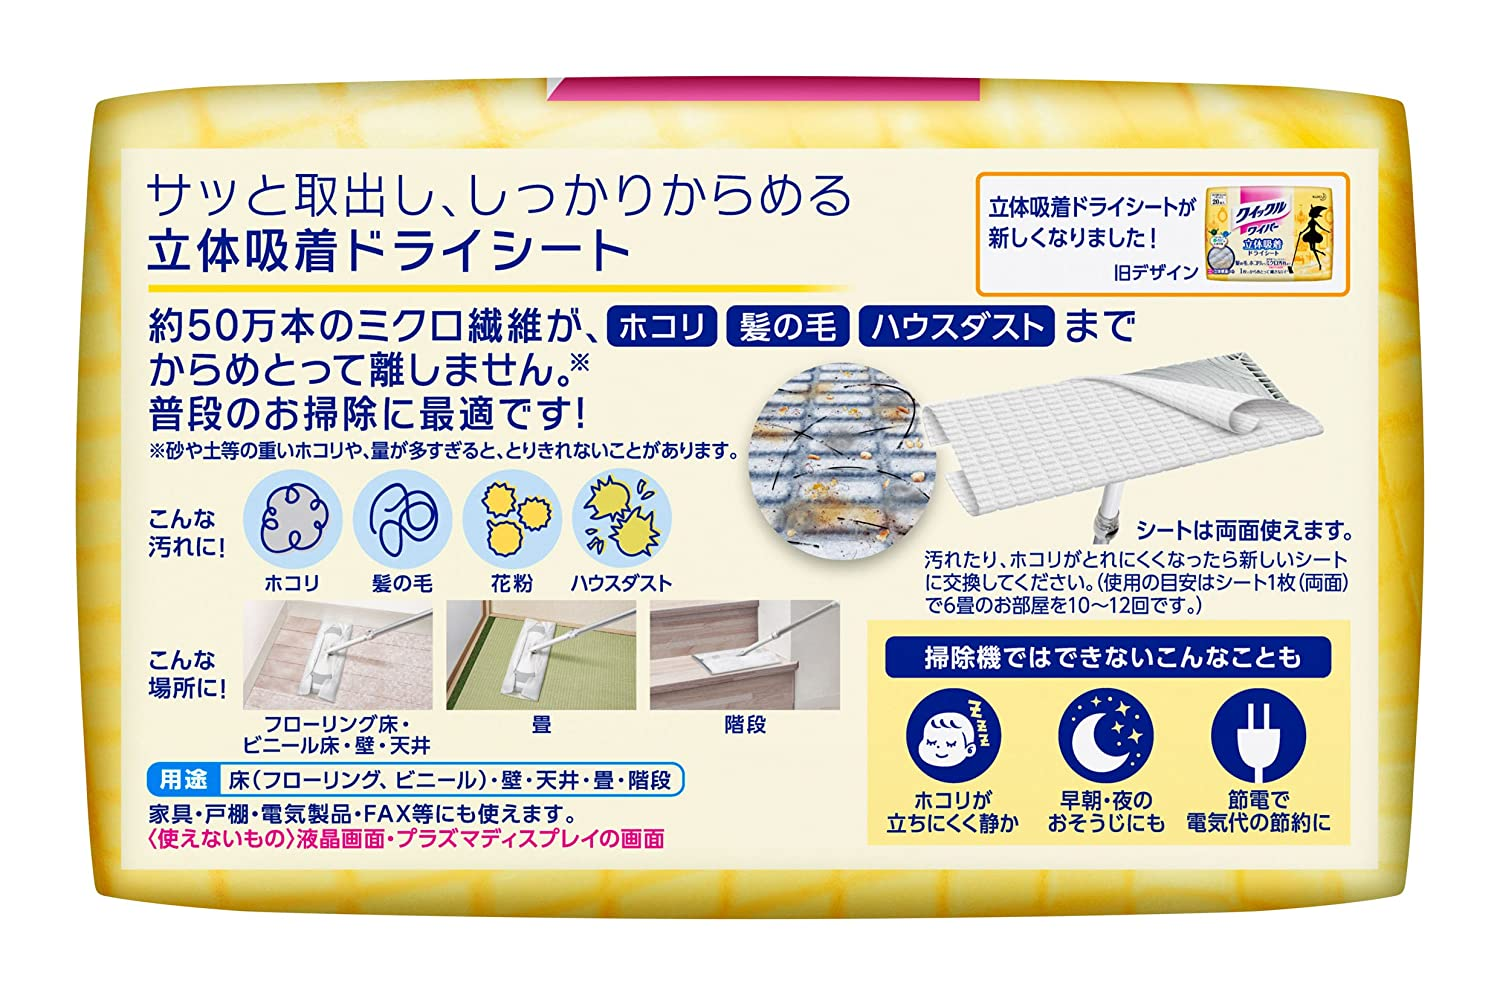 54844dca2f96 Amazon.com: Japan Cleaning Products - Quick Wiper dry sheet 20 ...